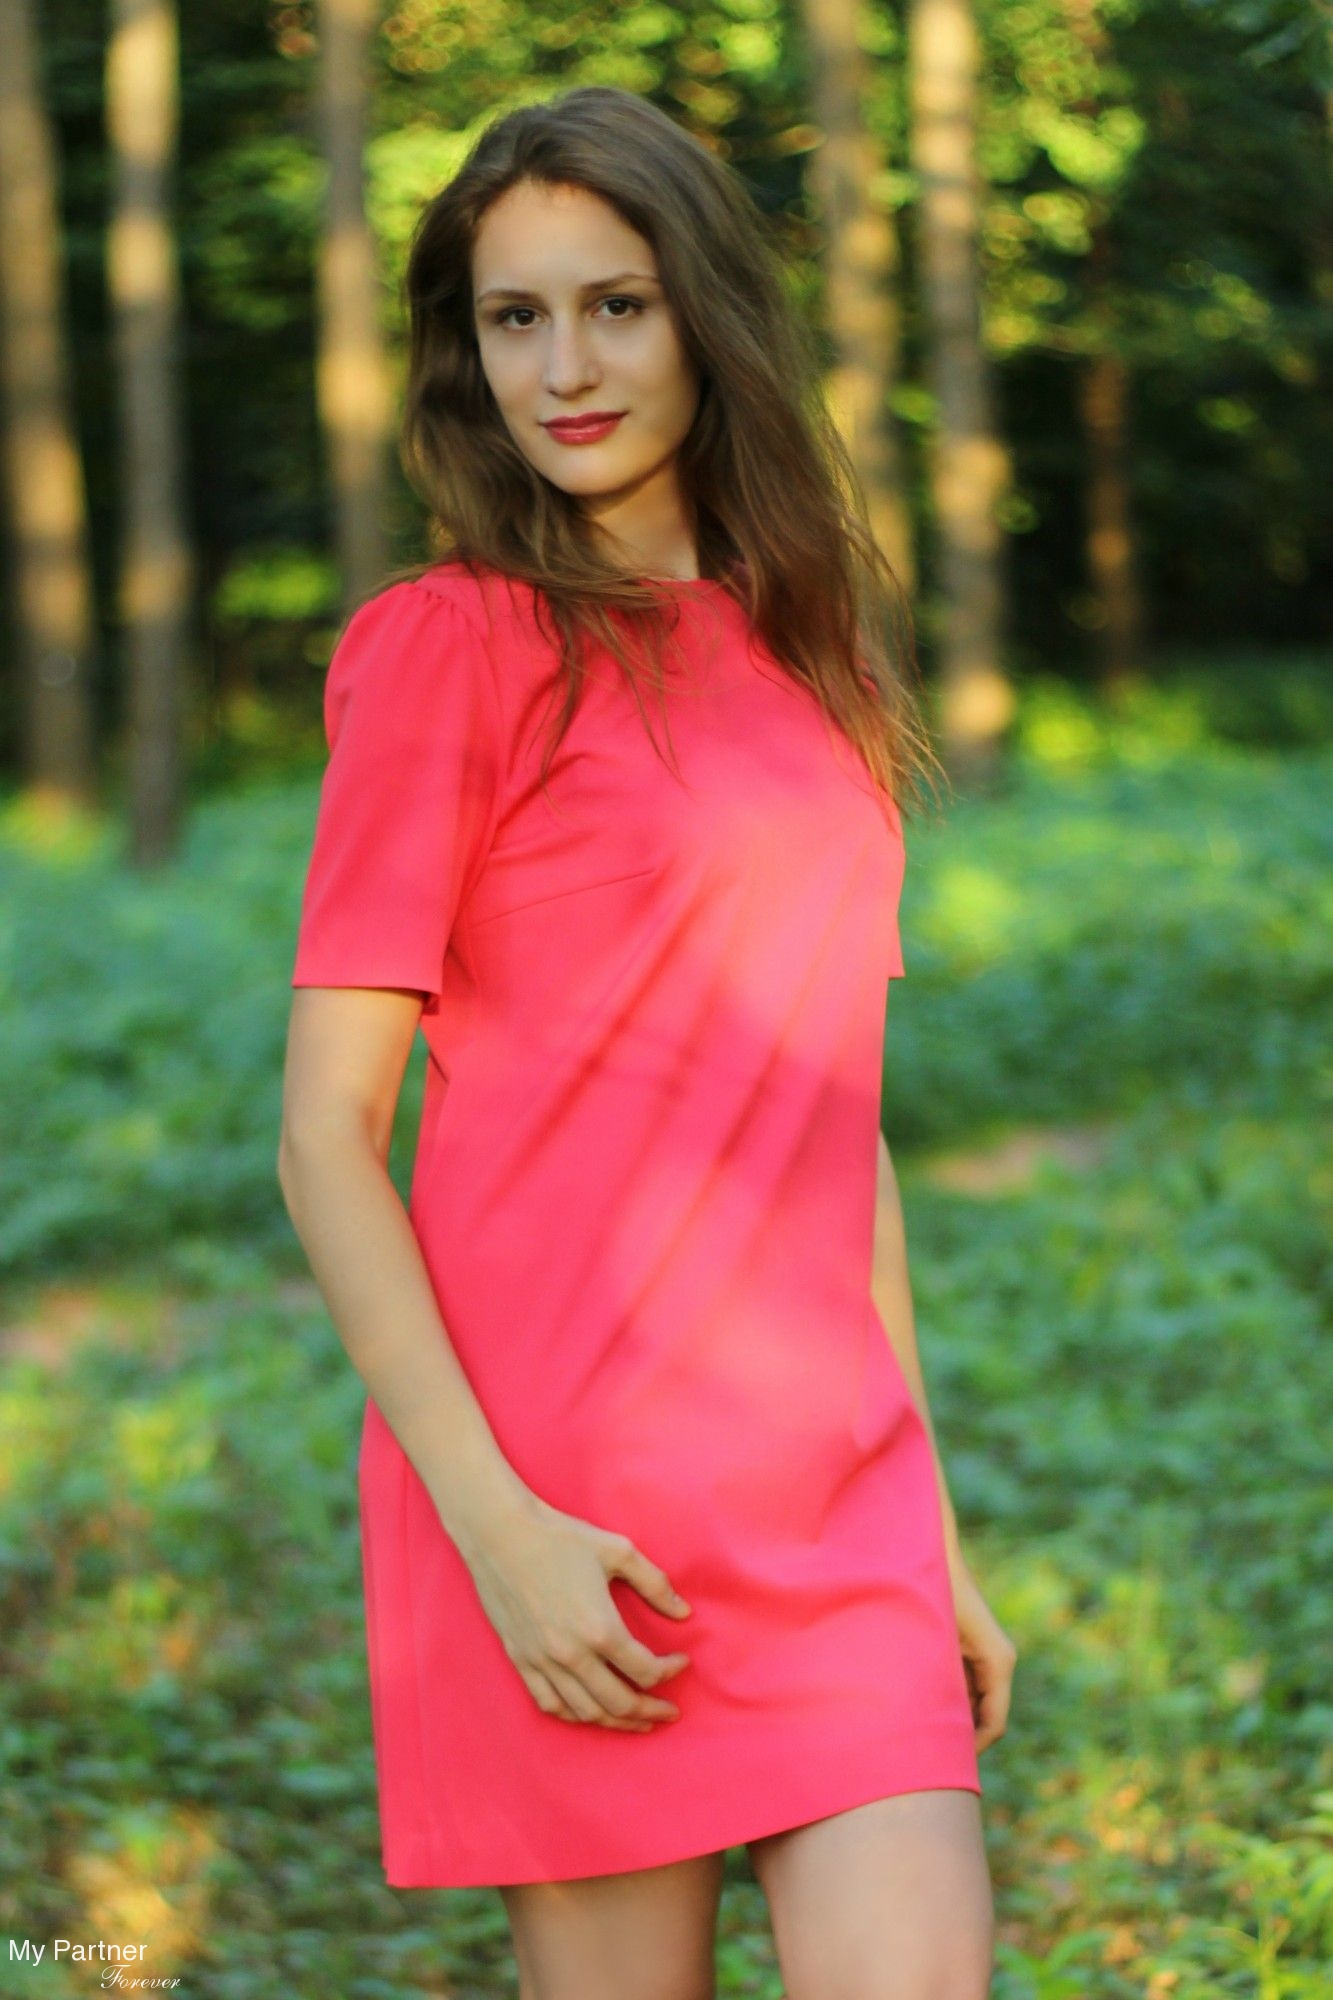 Datingsite to Meet Sexy Belarusian Girl Elena from Grodno, Belarus